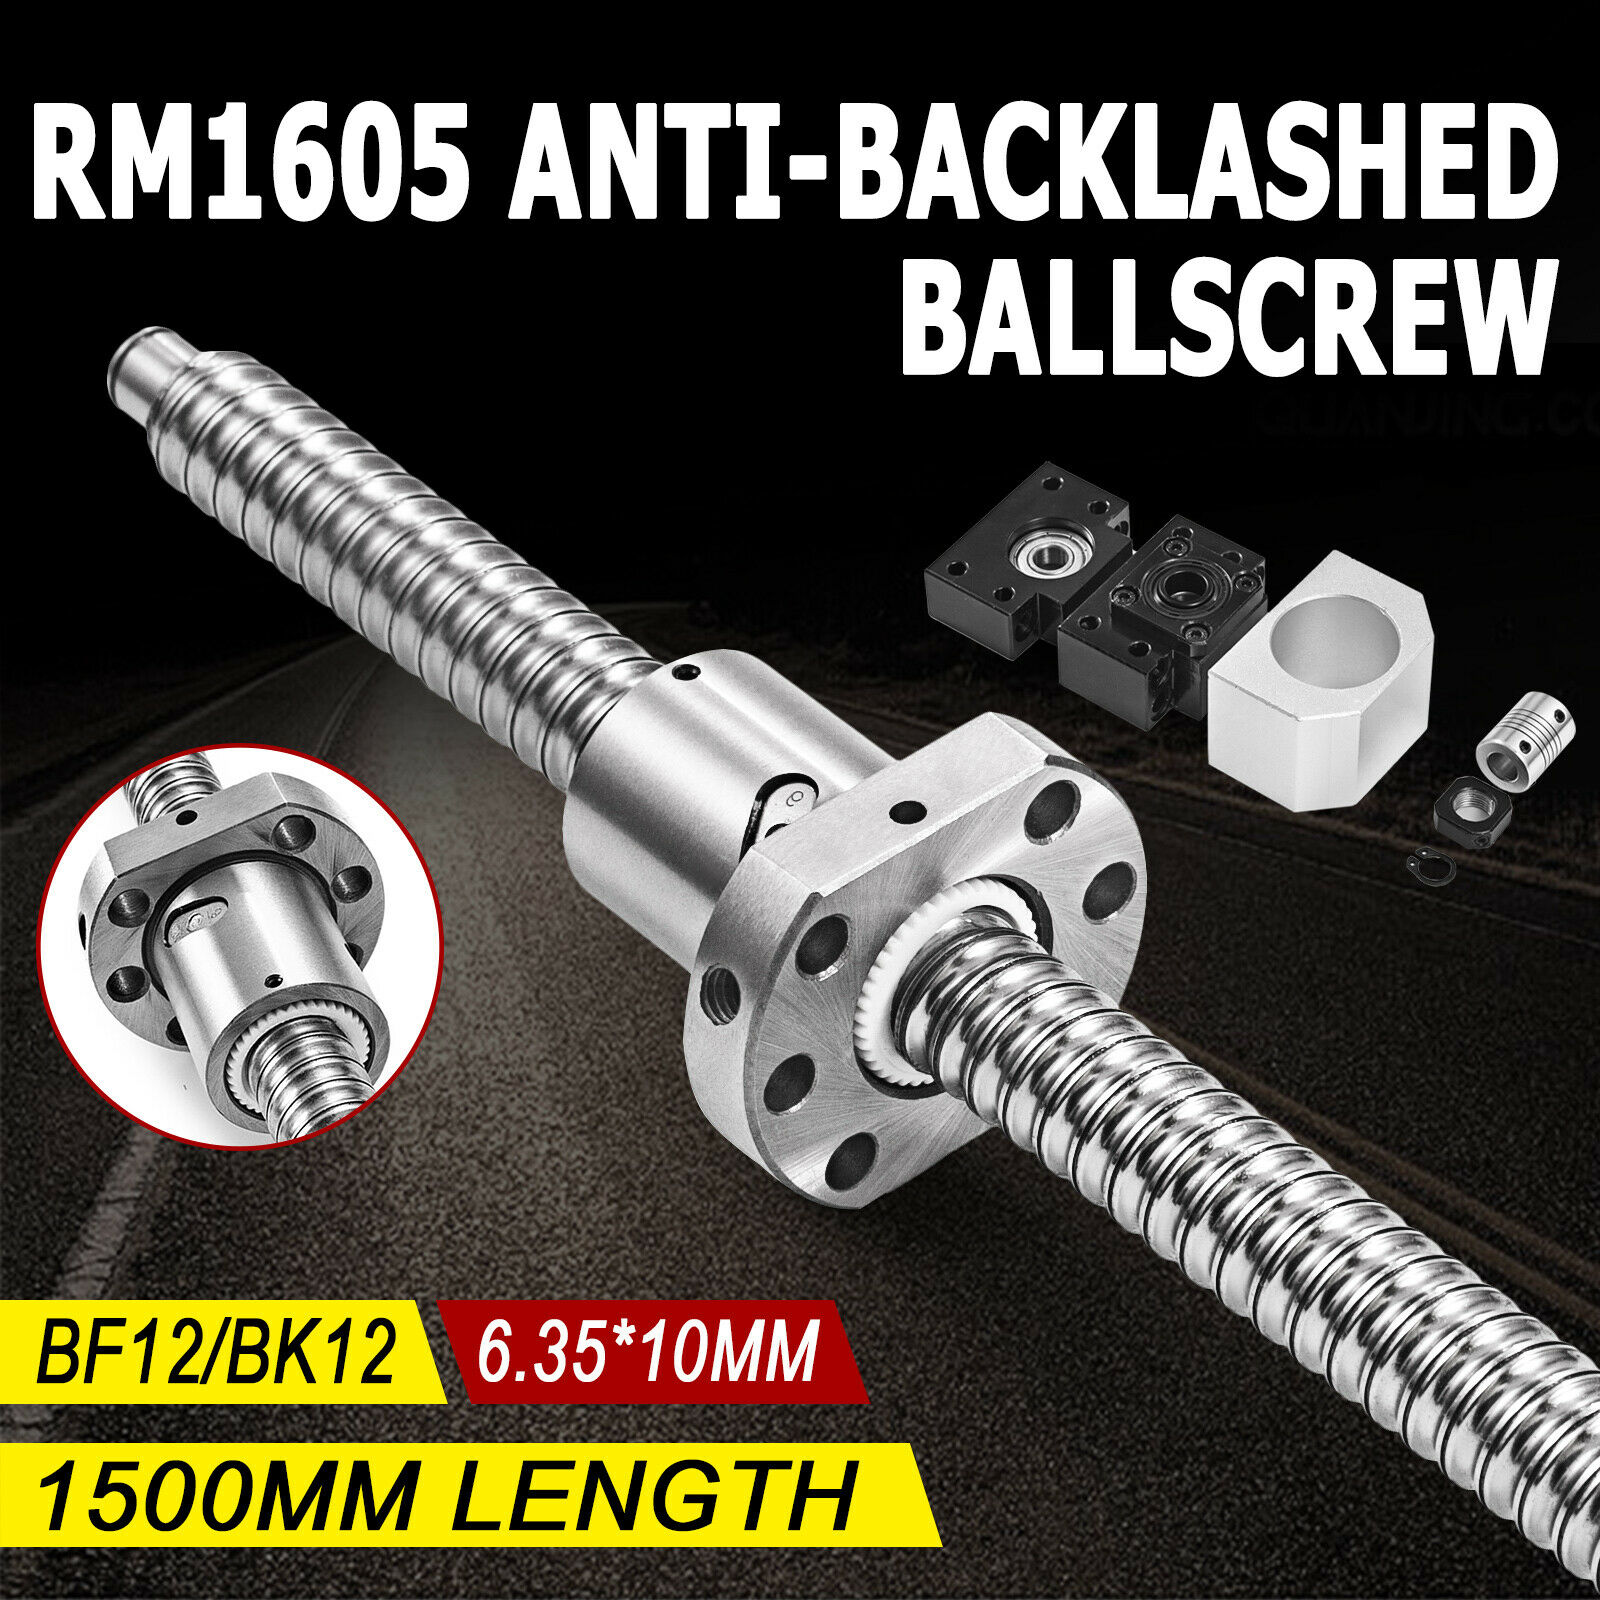 M/_M/_S RM1605 Ballscrew L570mm with Ball Nut Both end Machined